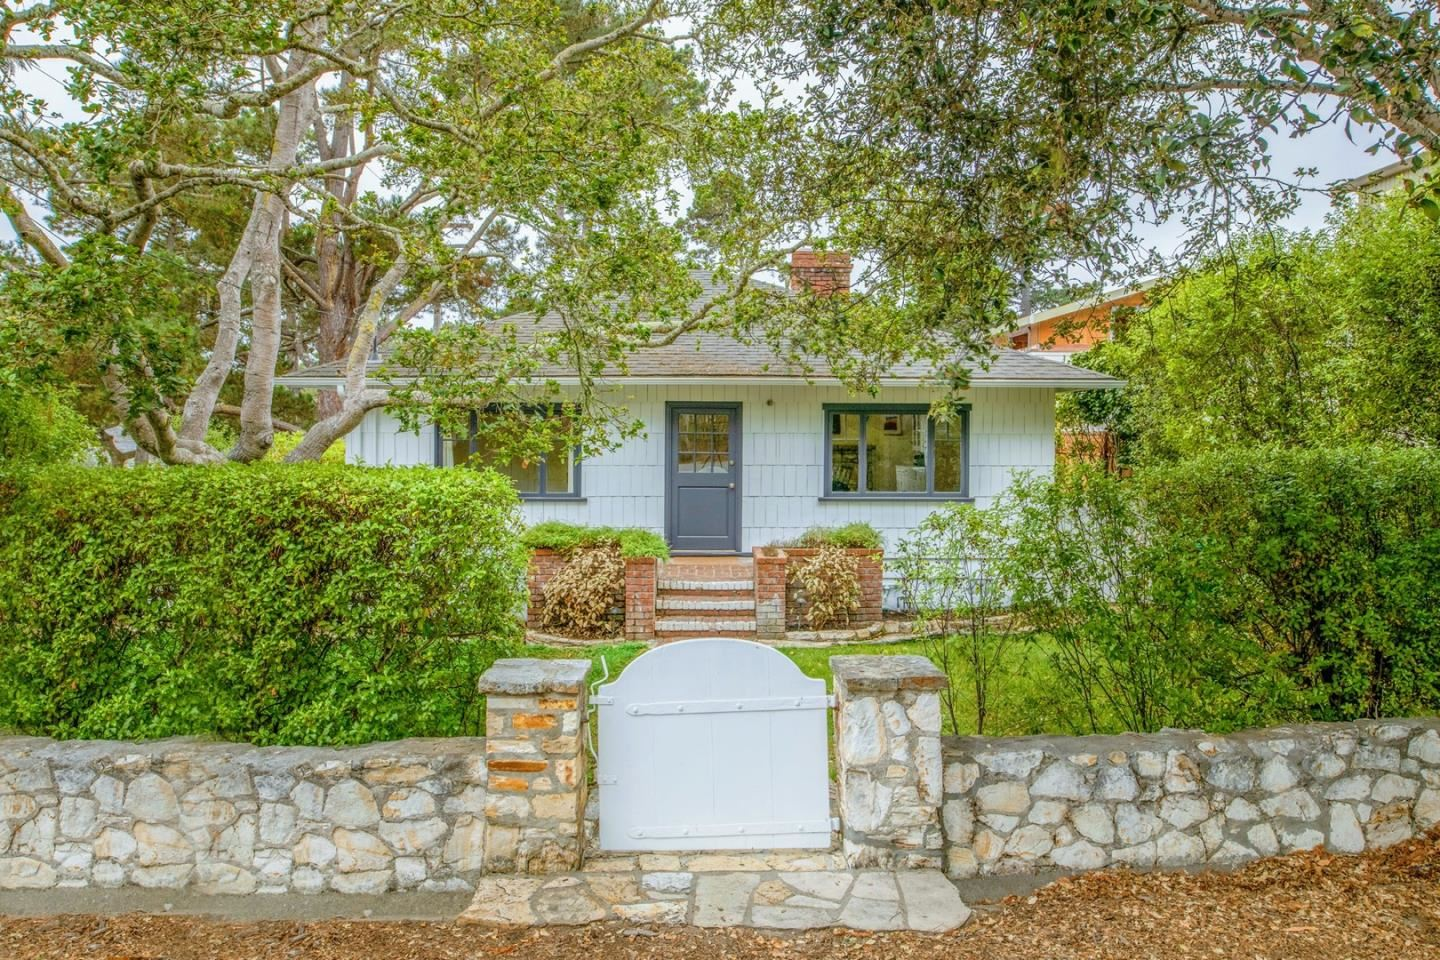 Photo for 0 NW corner Dolores & 12th Ave., CARMEL, CA 93921 (MLS # ML81775114)